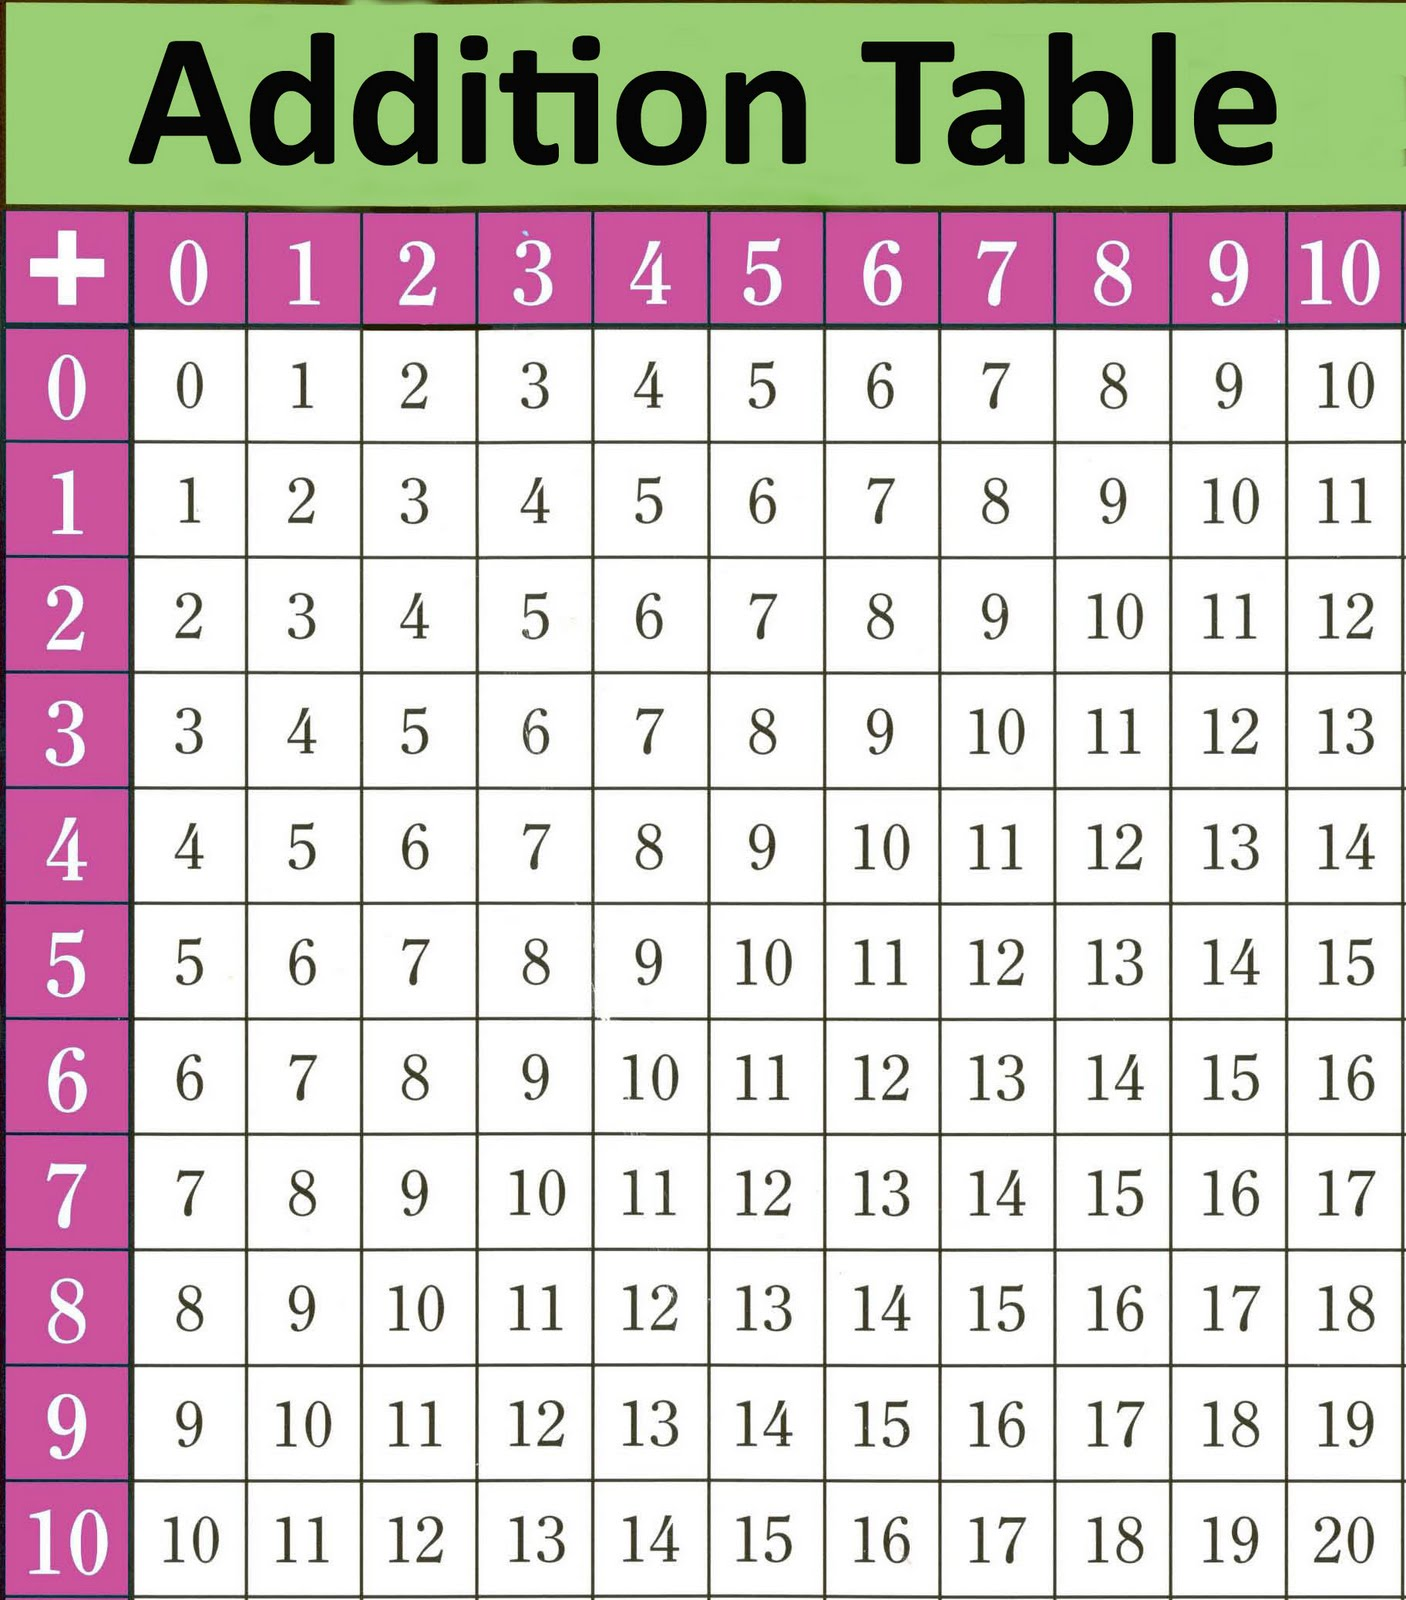 5 Best Images of Addition Table Printable Worksheets - Printable ...